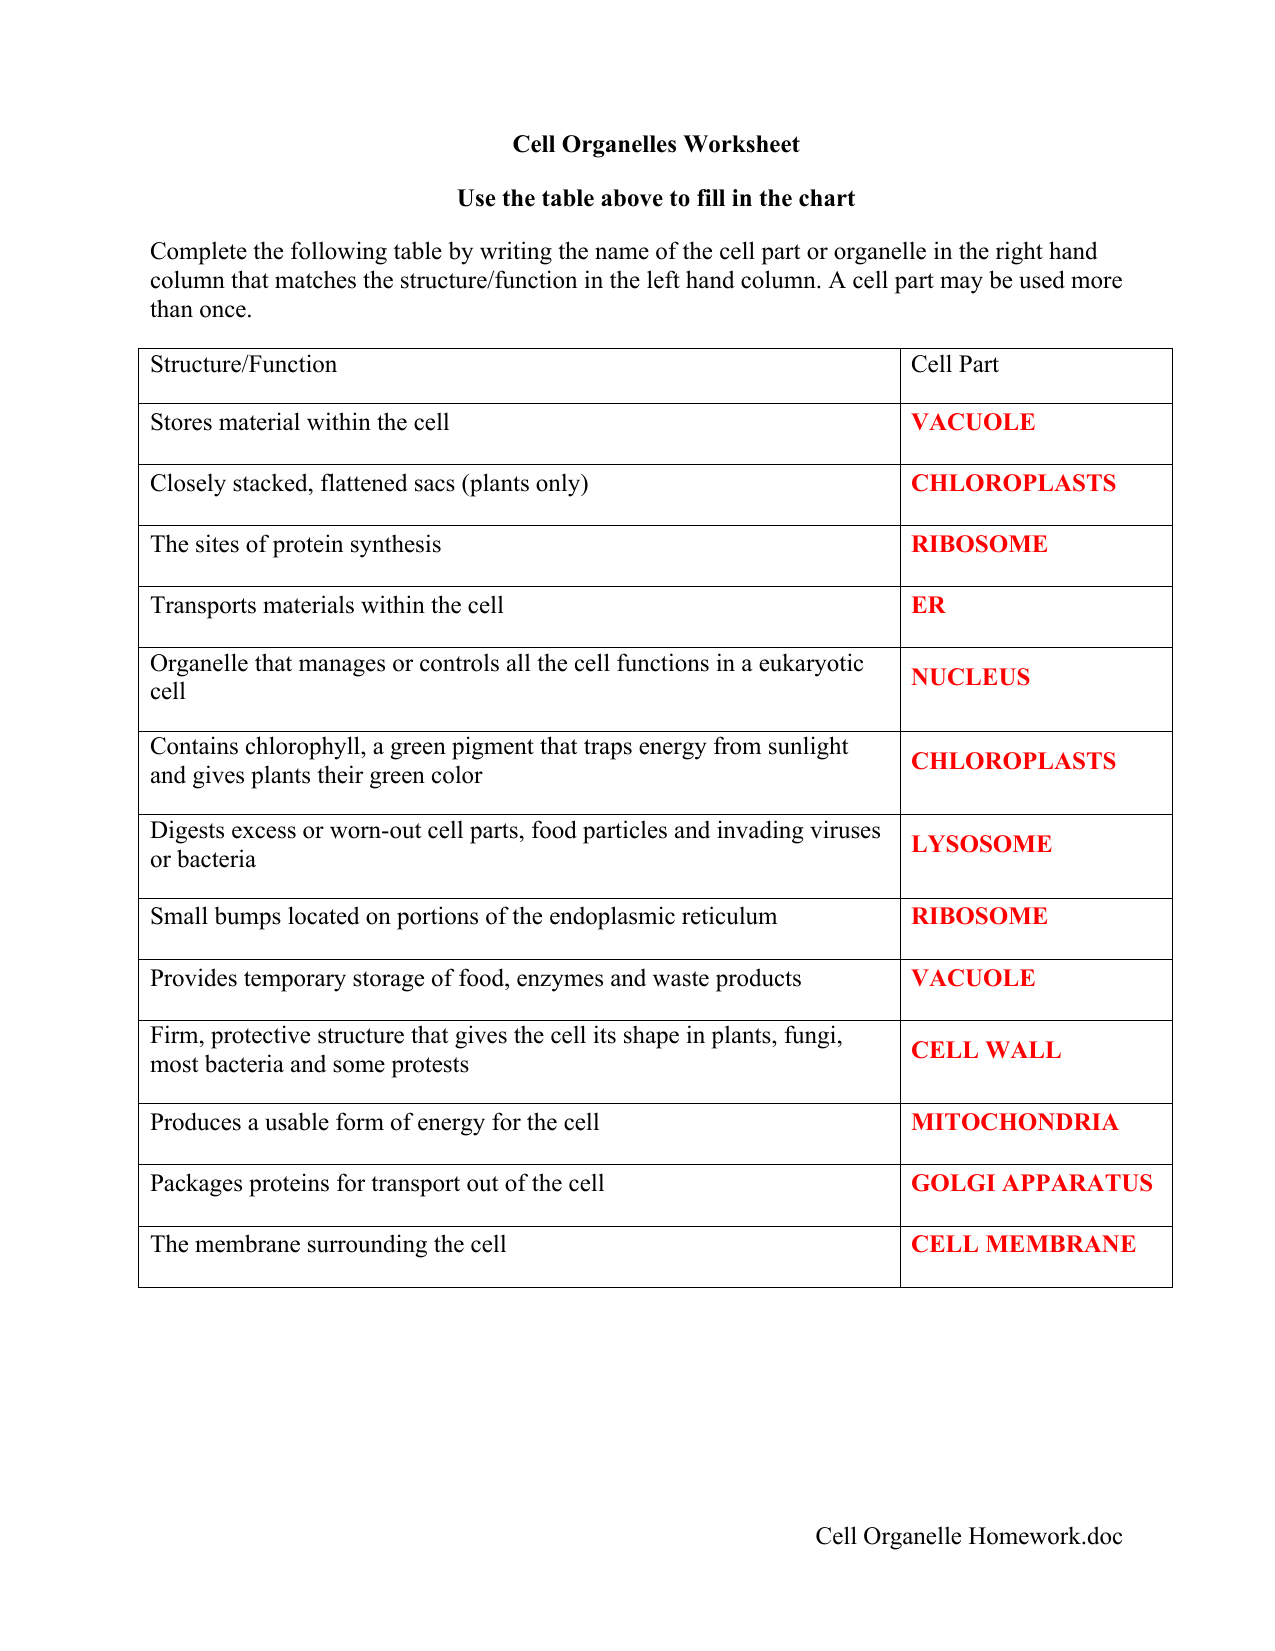 Cell Organelle Homeworkdoc Cell Organelles Worksheet With Cell Organelles Worksheet Answer Key Biology